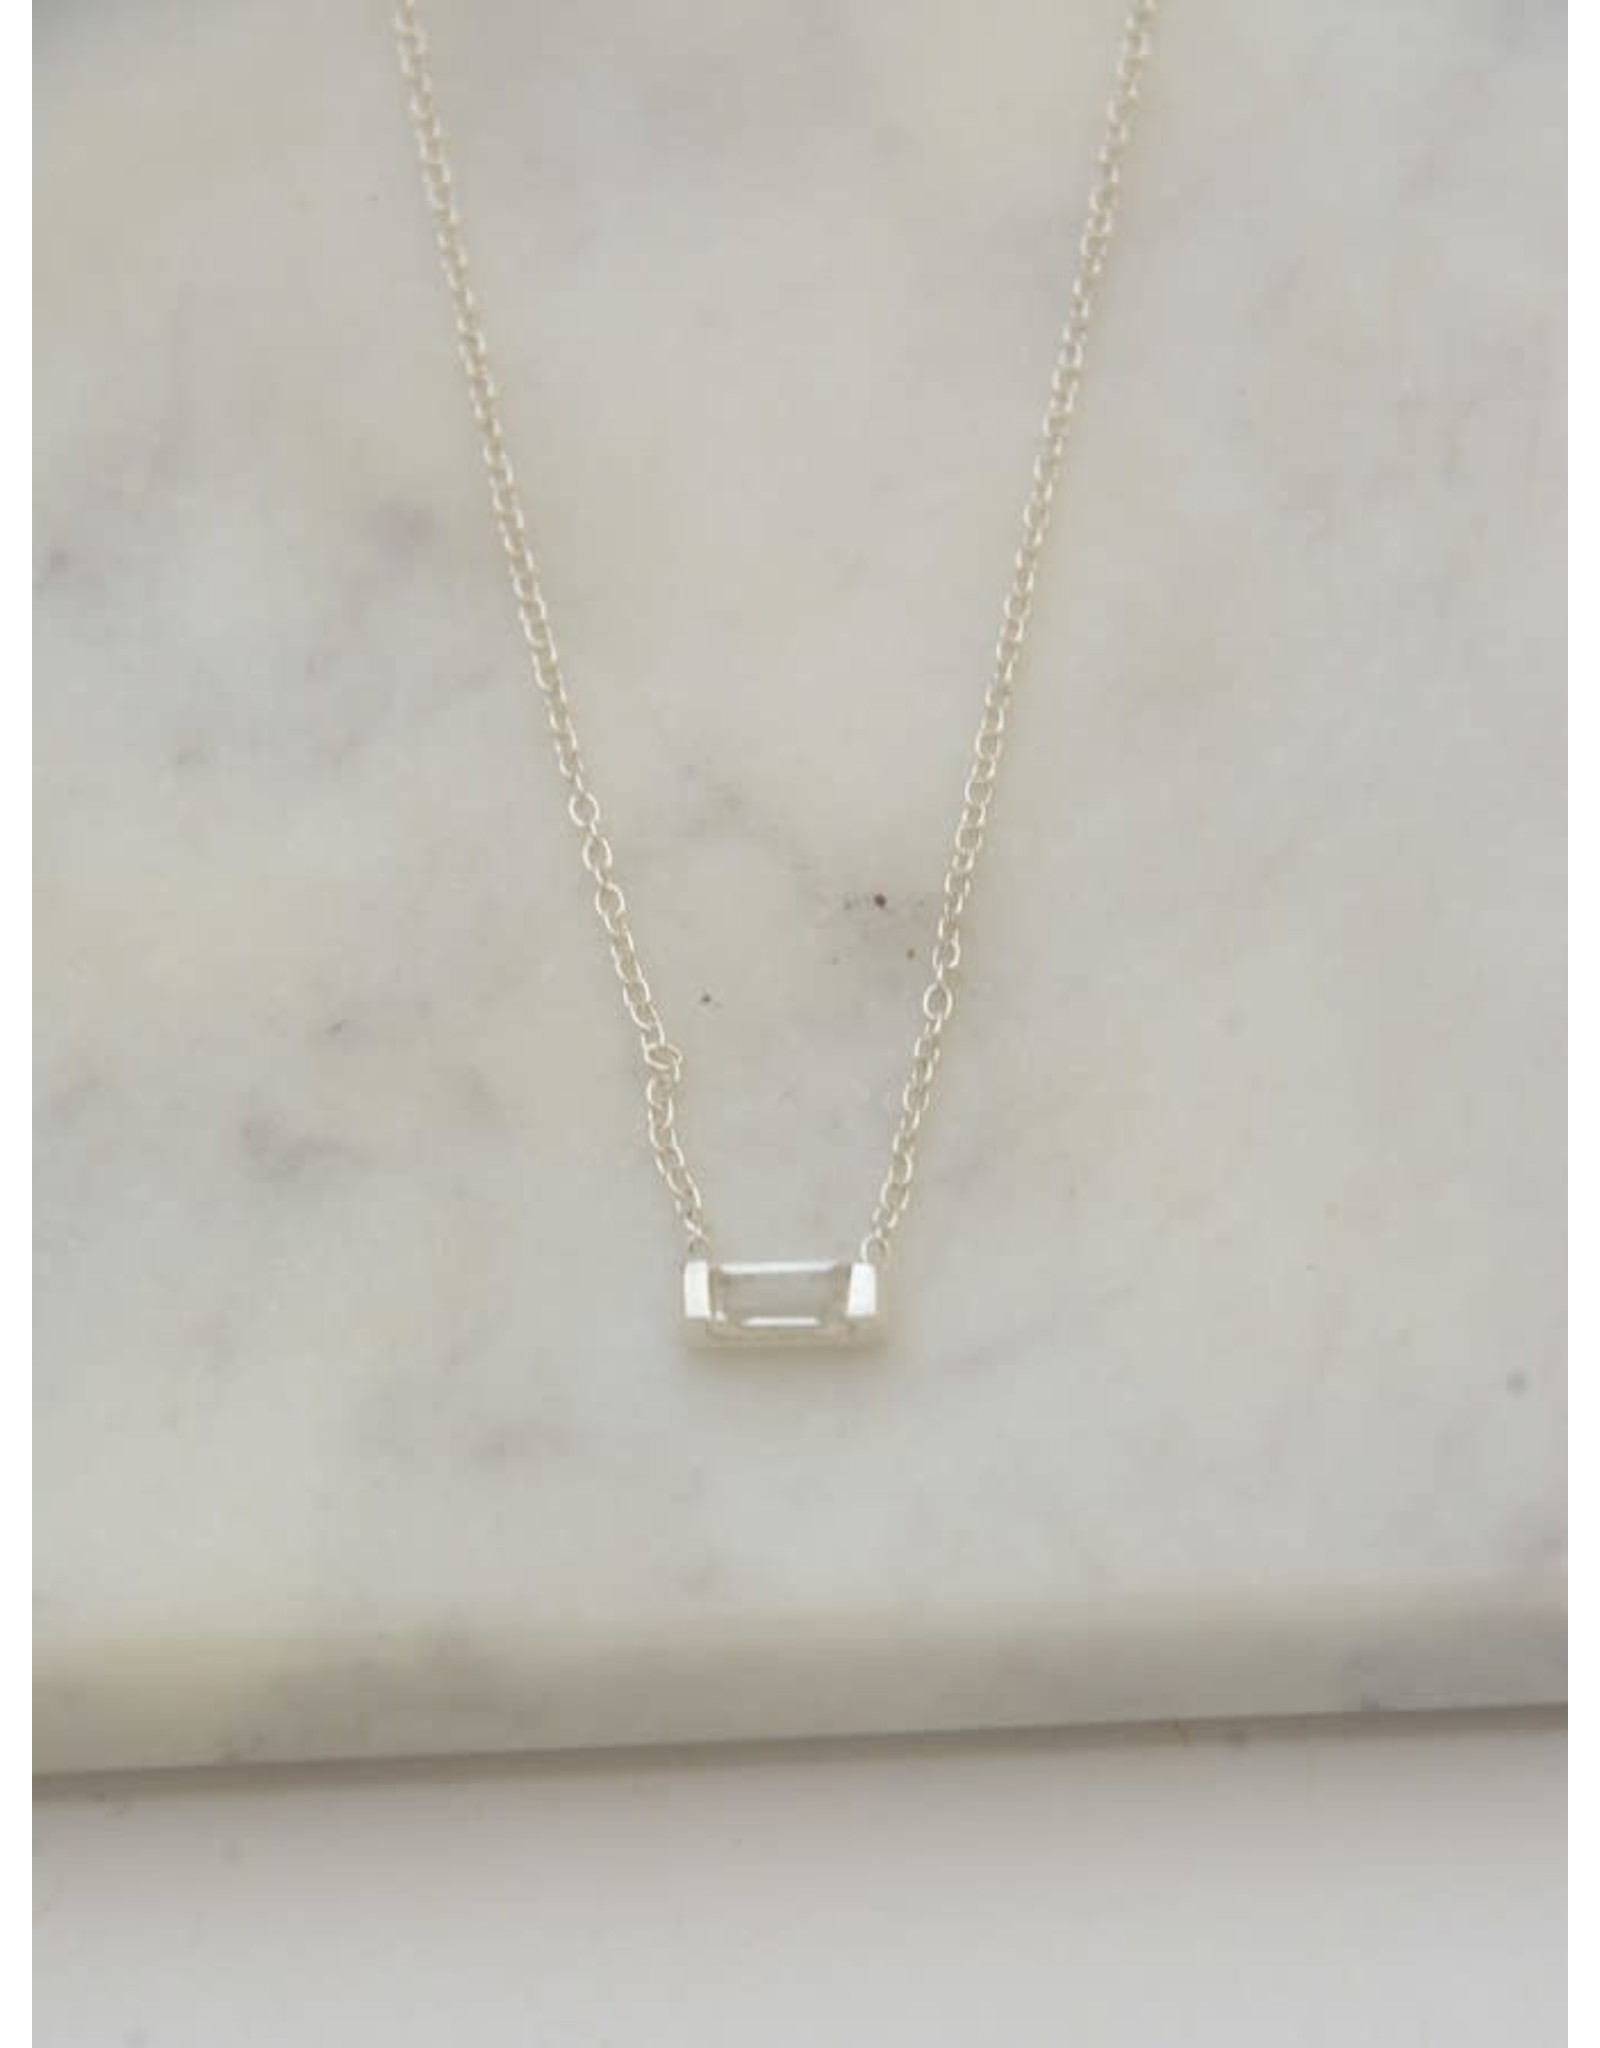 Prism Sterling Necklace - Crystal